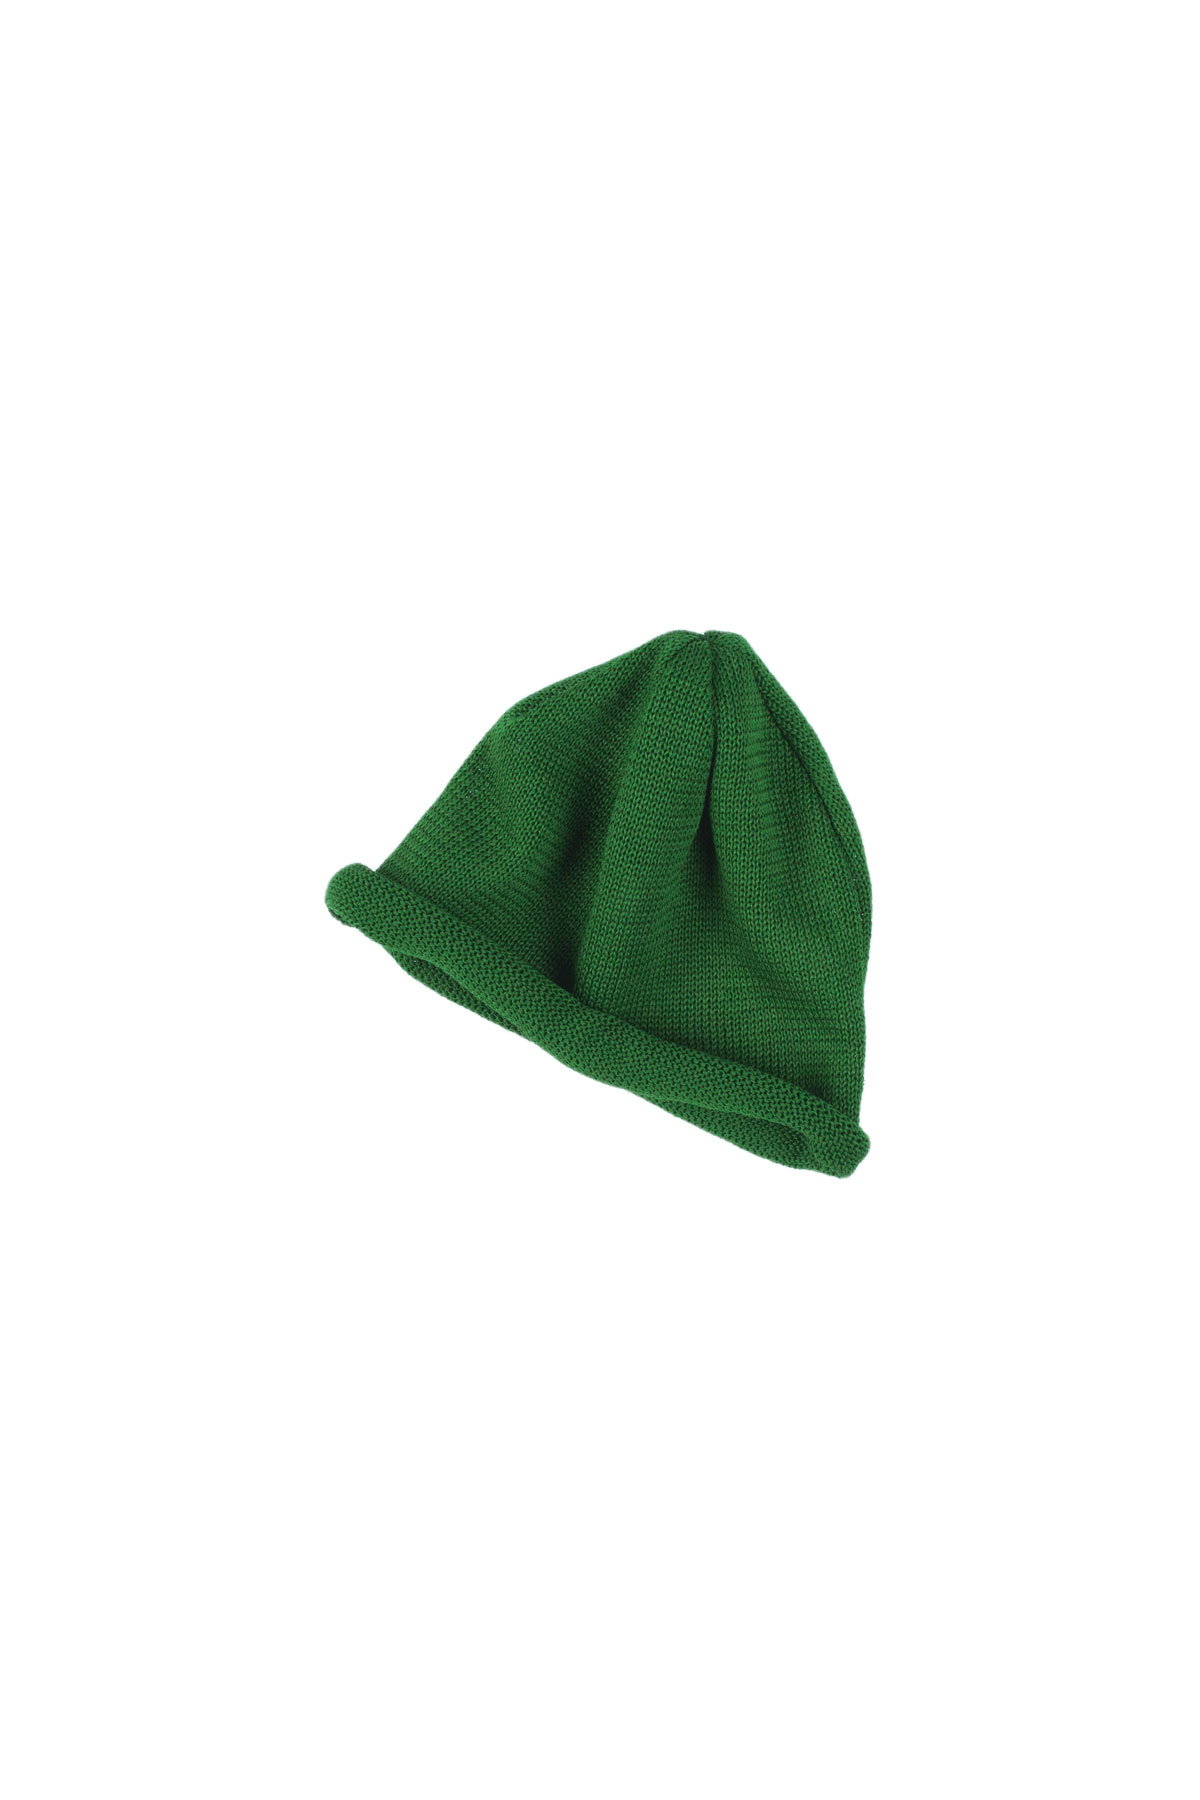 Infielder Design : Straw Roll Knit Cap (Green)